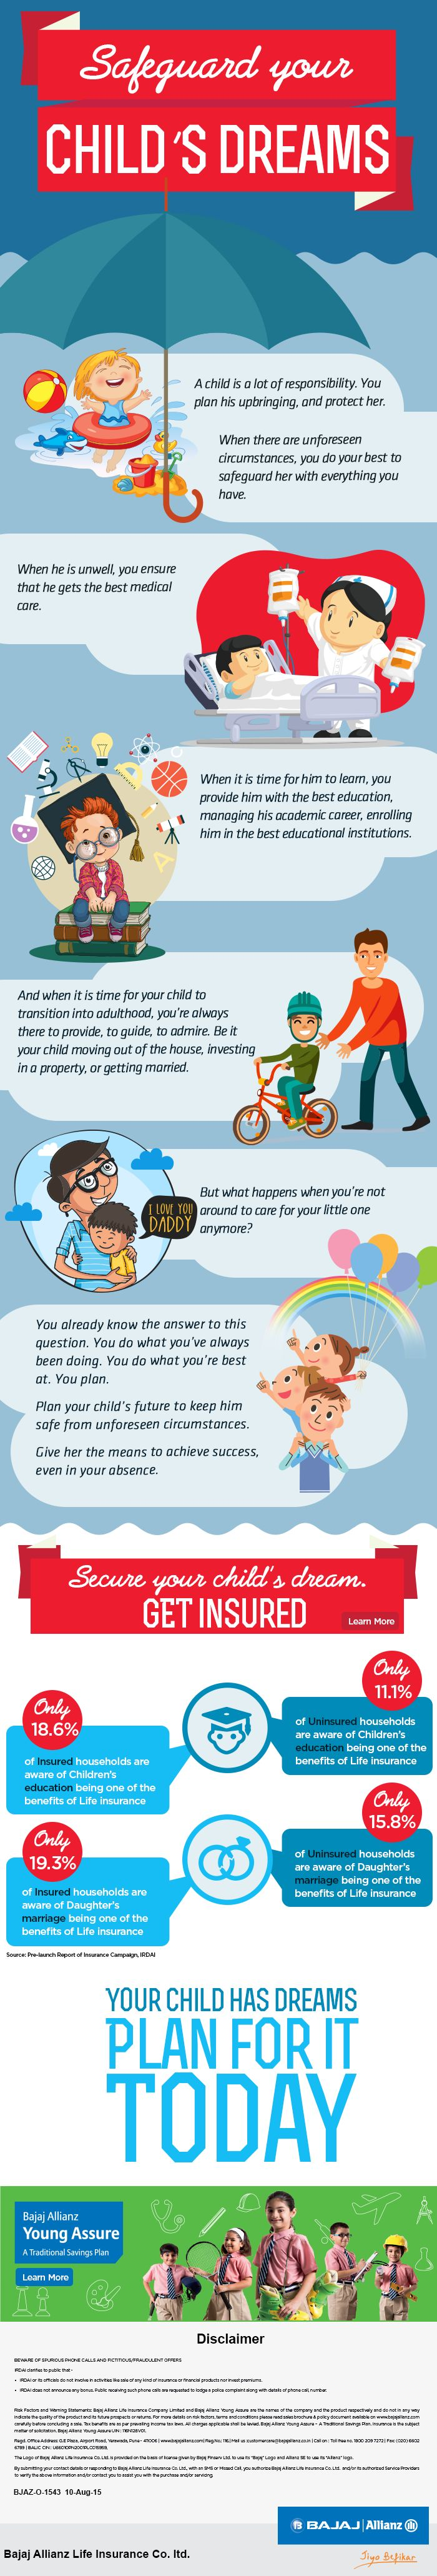 Bajaj Allianz Life Insurance Child plans and policies offer security against constraints like inflation and rising educational expenses. https://www.bajajallianz.com/Corp/child-insurance-plans/child-insurance-plans.jsp